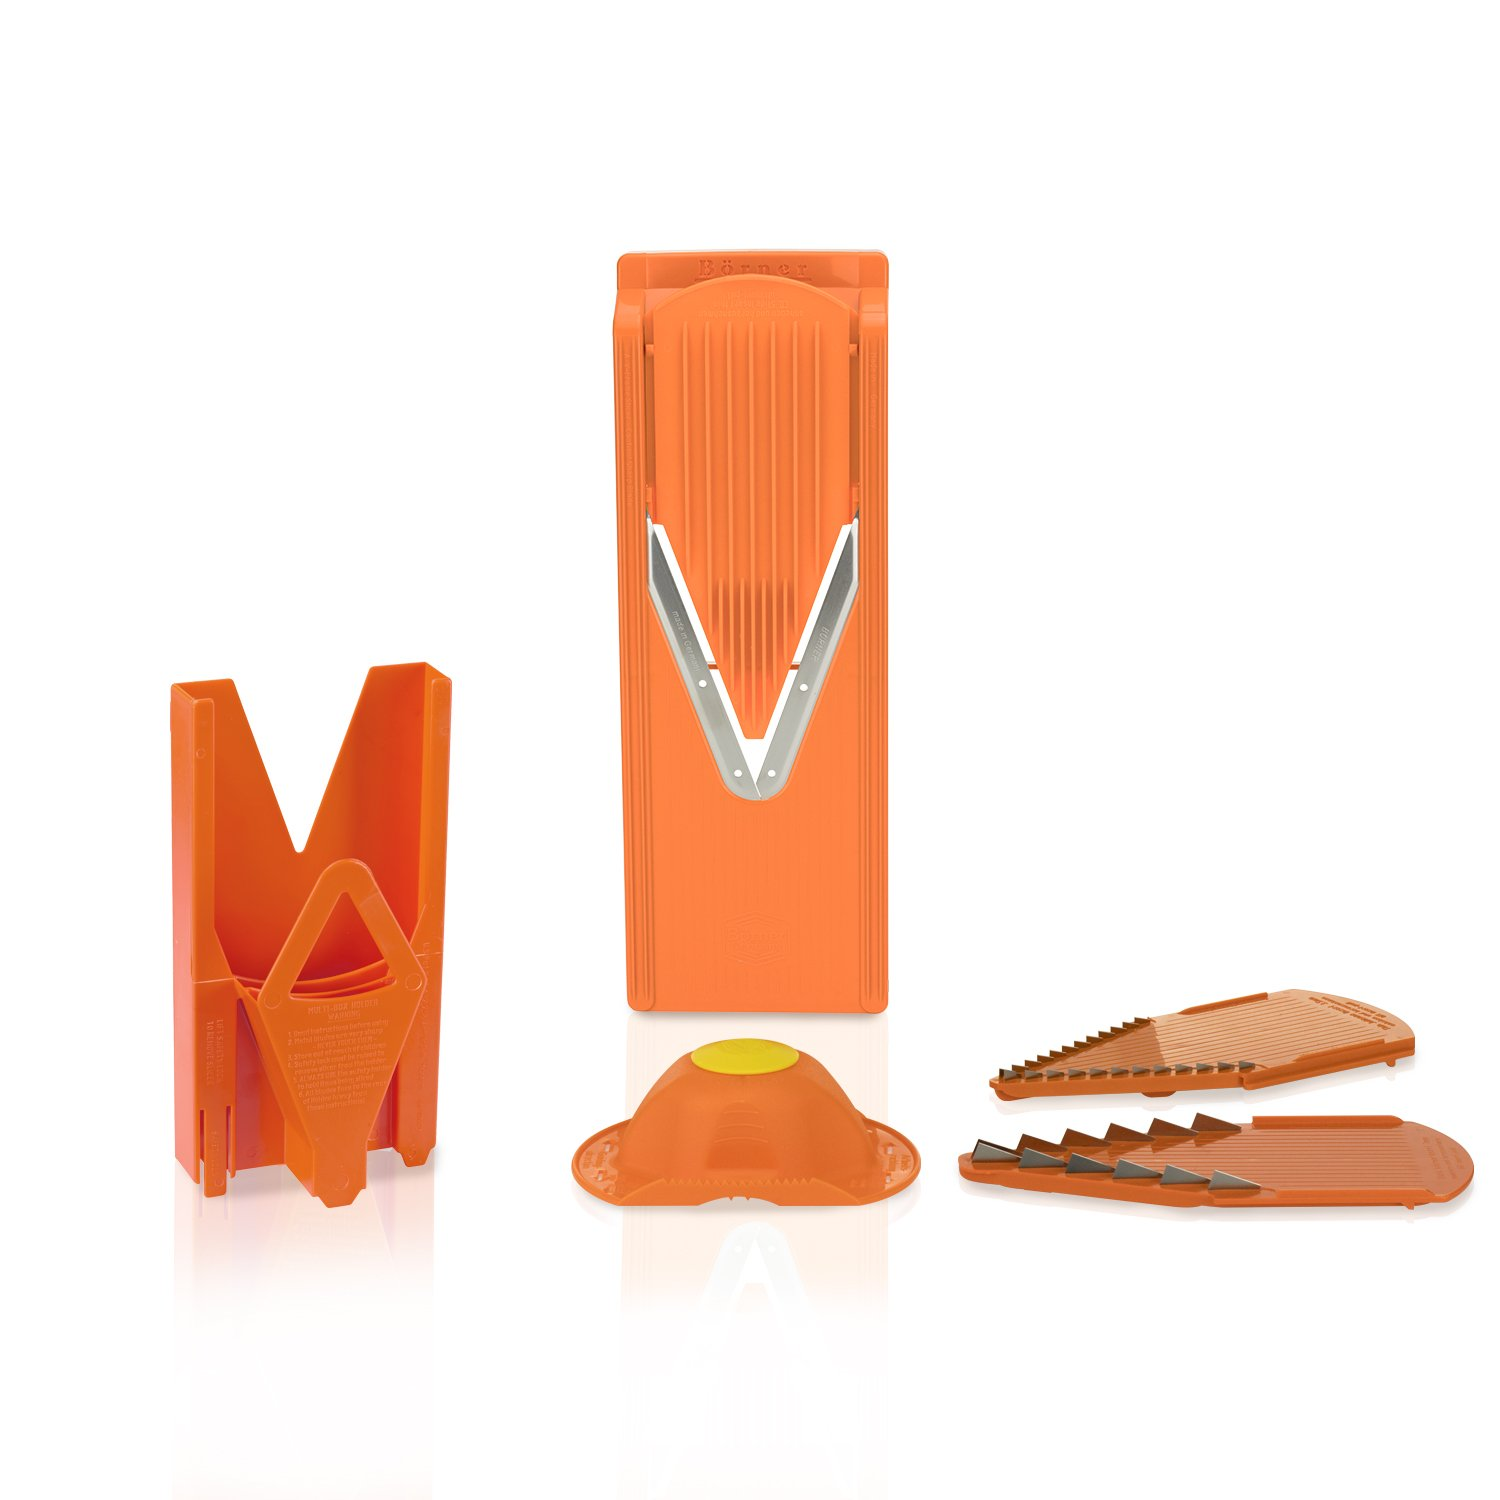 Swissmar Borner V-1001 V-Slicer Plus Mandoline 5 Piece Set (Orange) by Borner